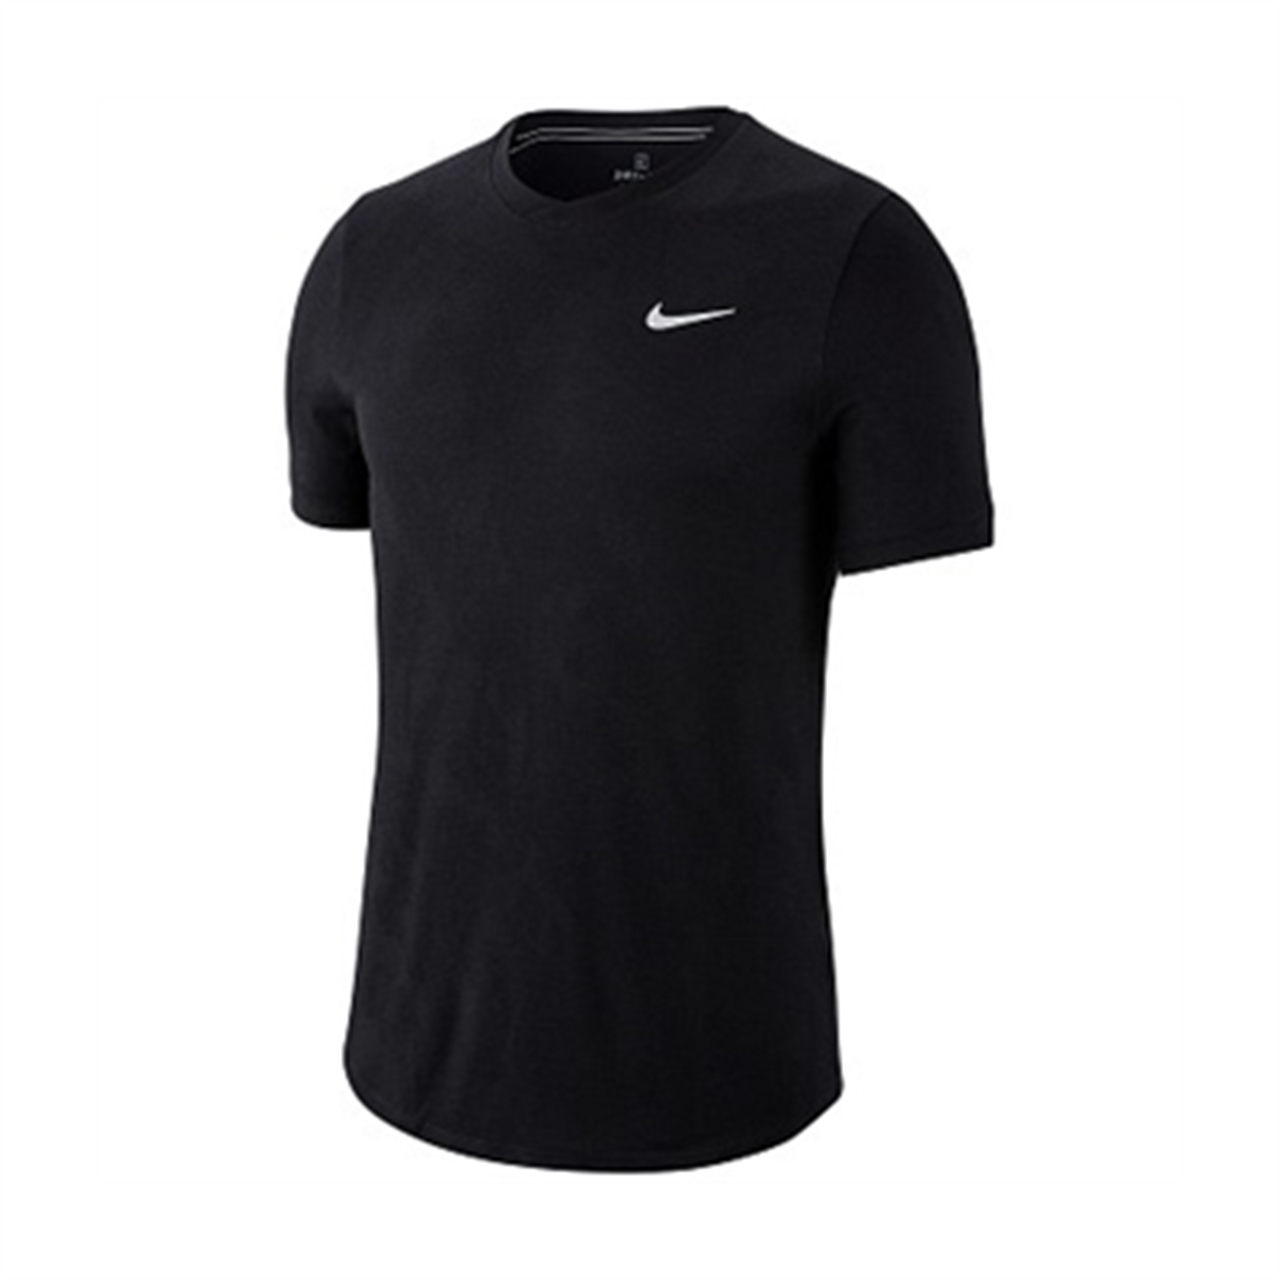 Nike Dry Top Challenger Black/White